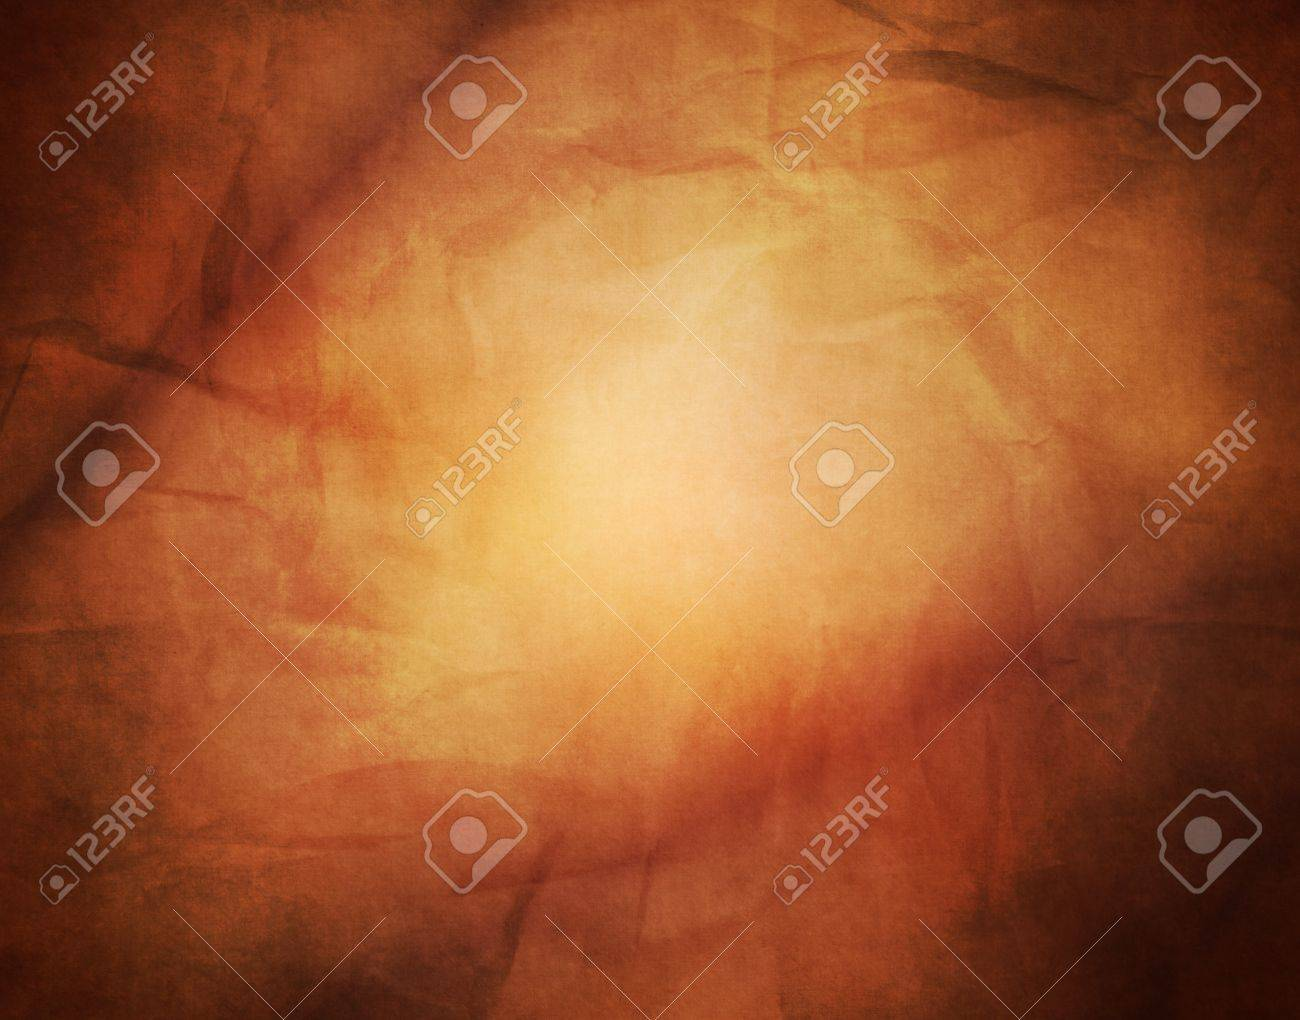 Grunge Background in russett and sepia tones Stock Photo - 4041503